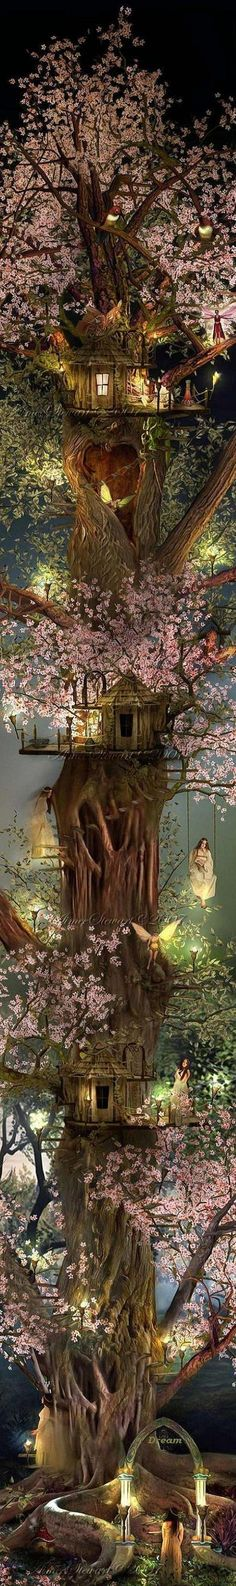 Elves Faeries Gnomes: Faery treehouse.